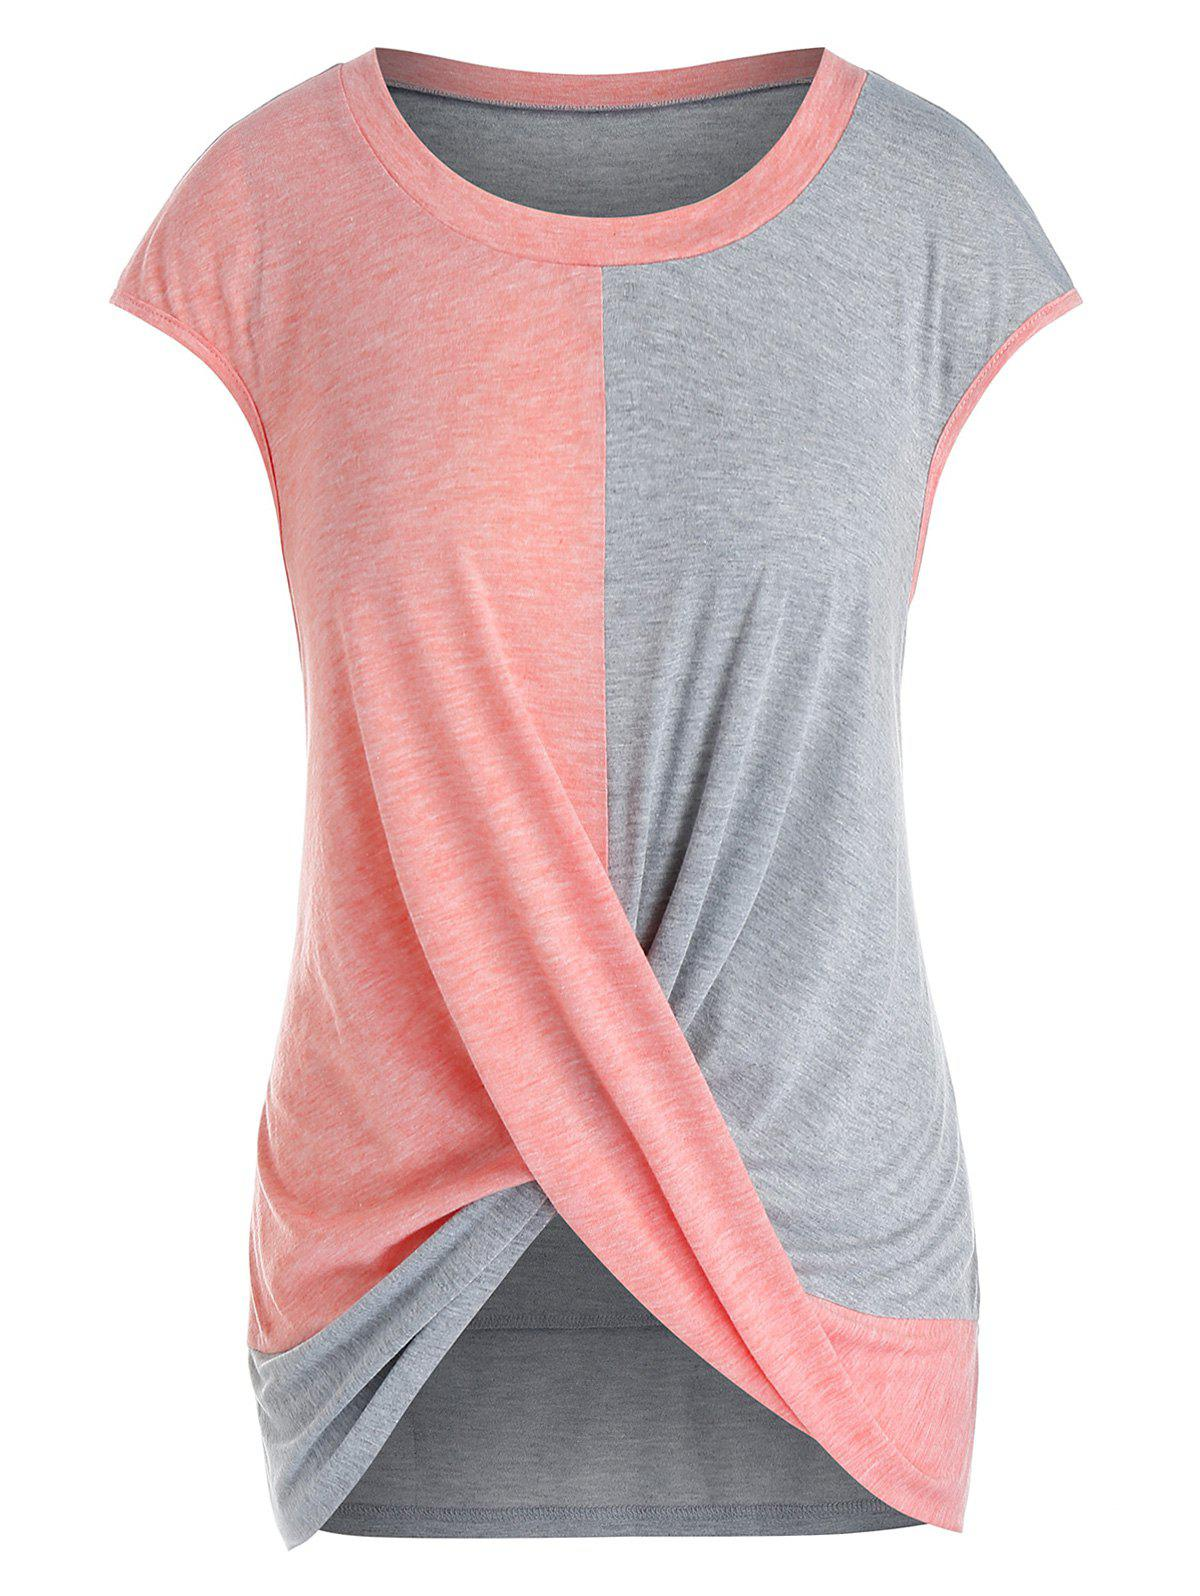 Outfit Plus Size Cap Sleeve Criss Cross T-shirt